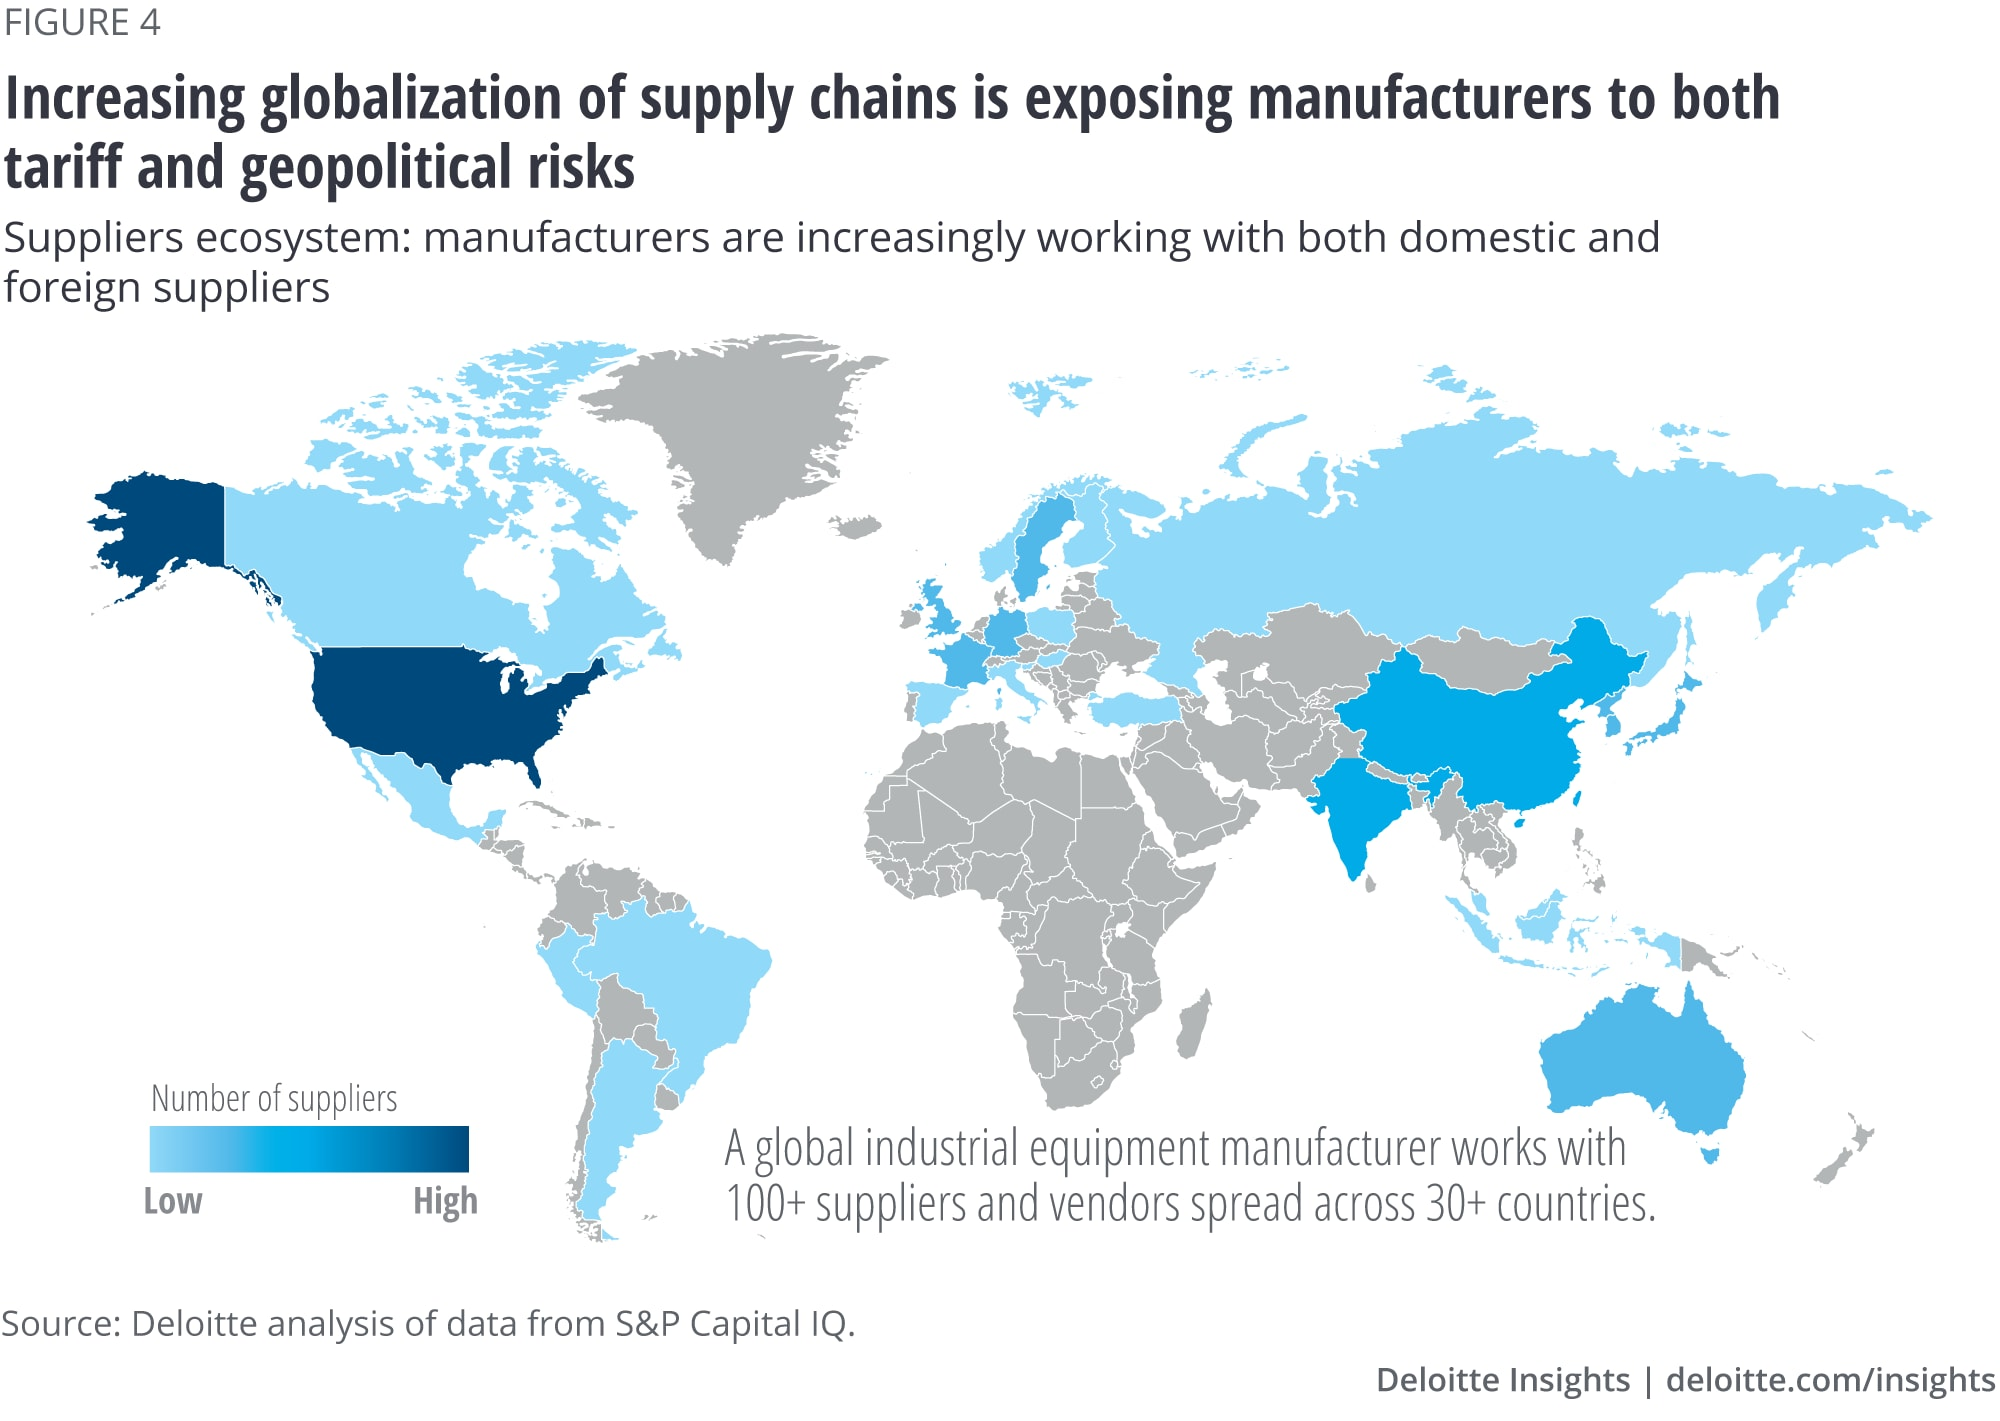 Increasing globalization of supply chains is exposing manufacturers to both tariff and geopolitical risks